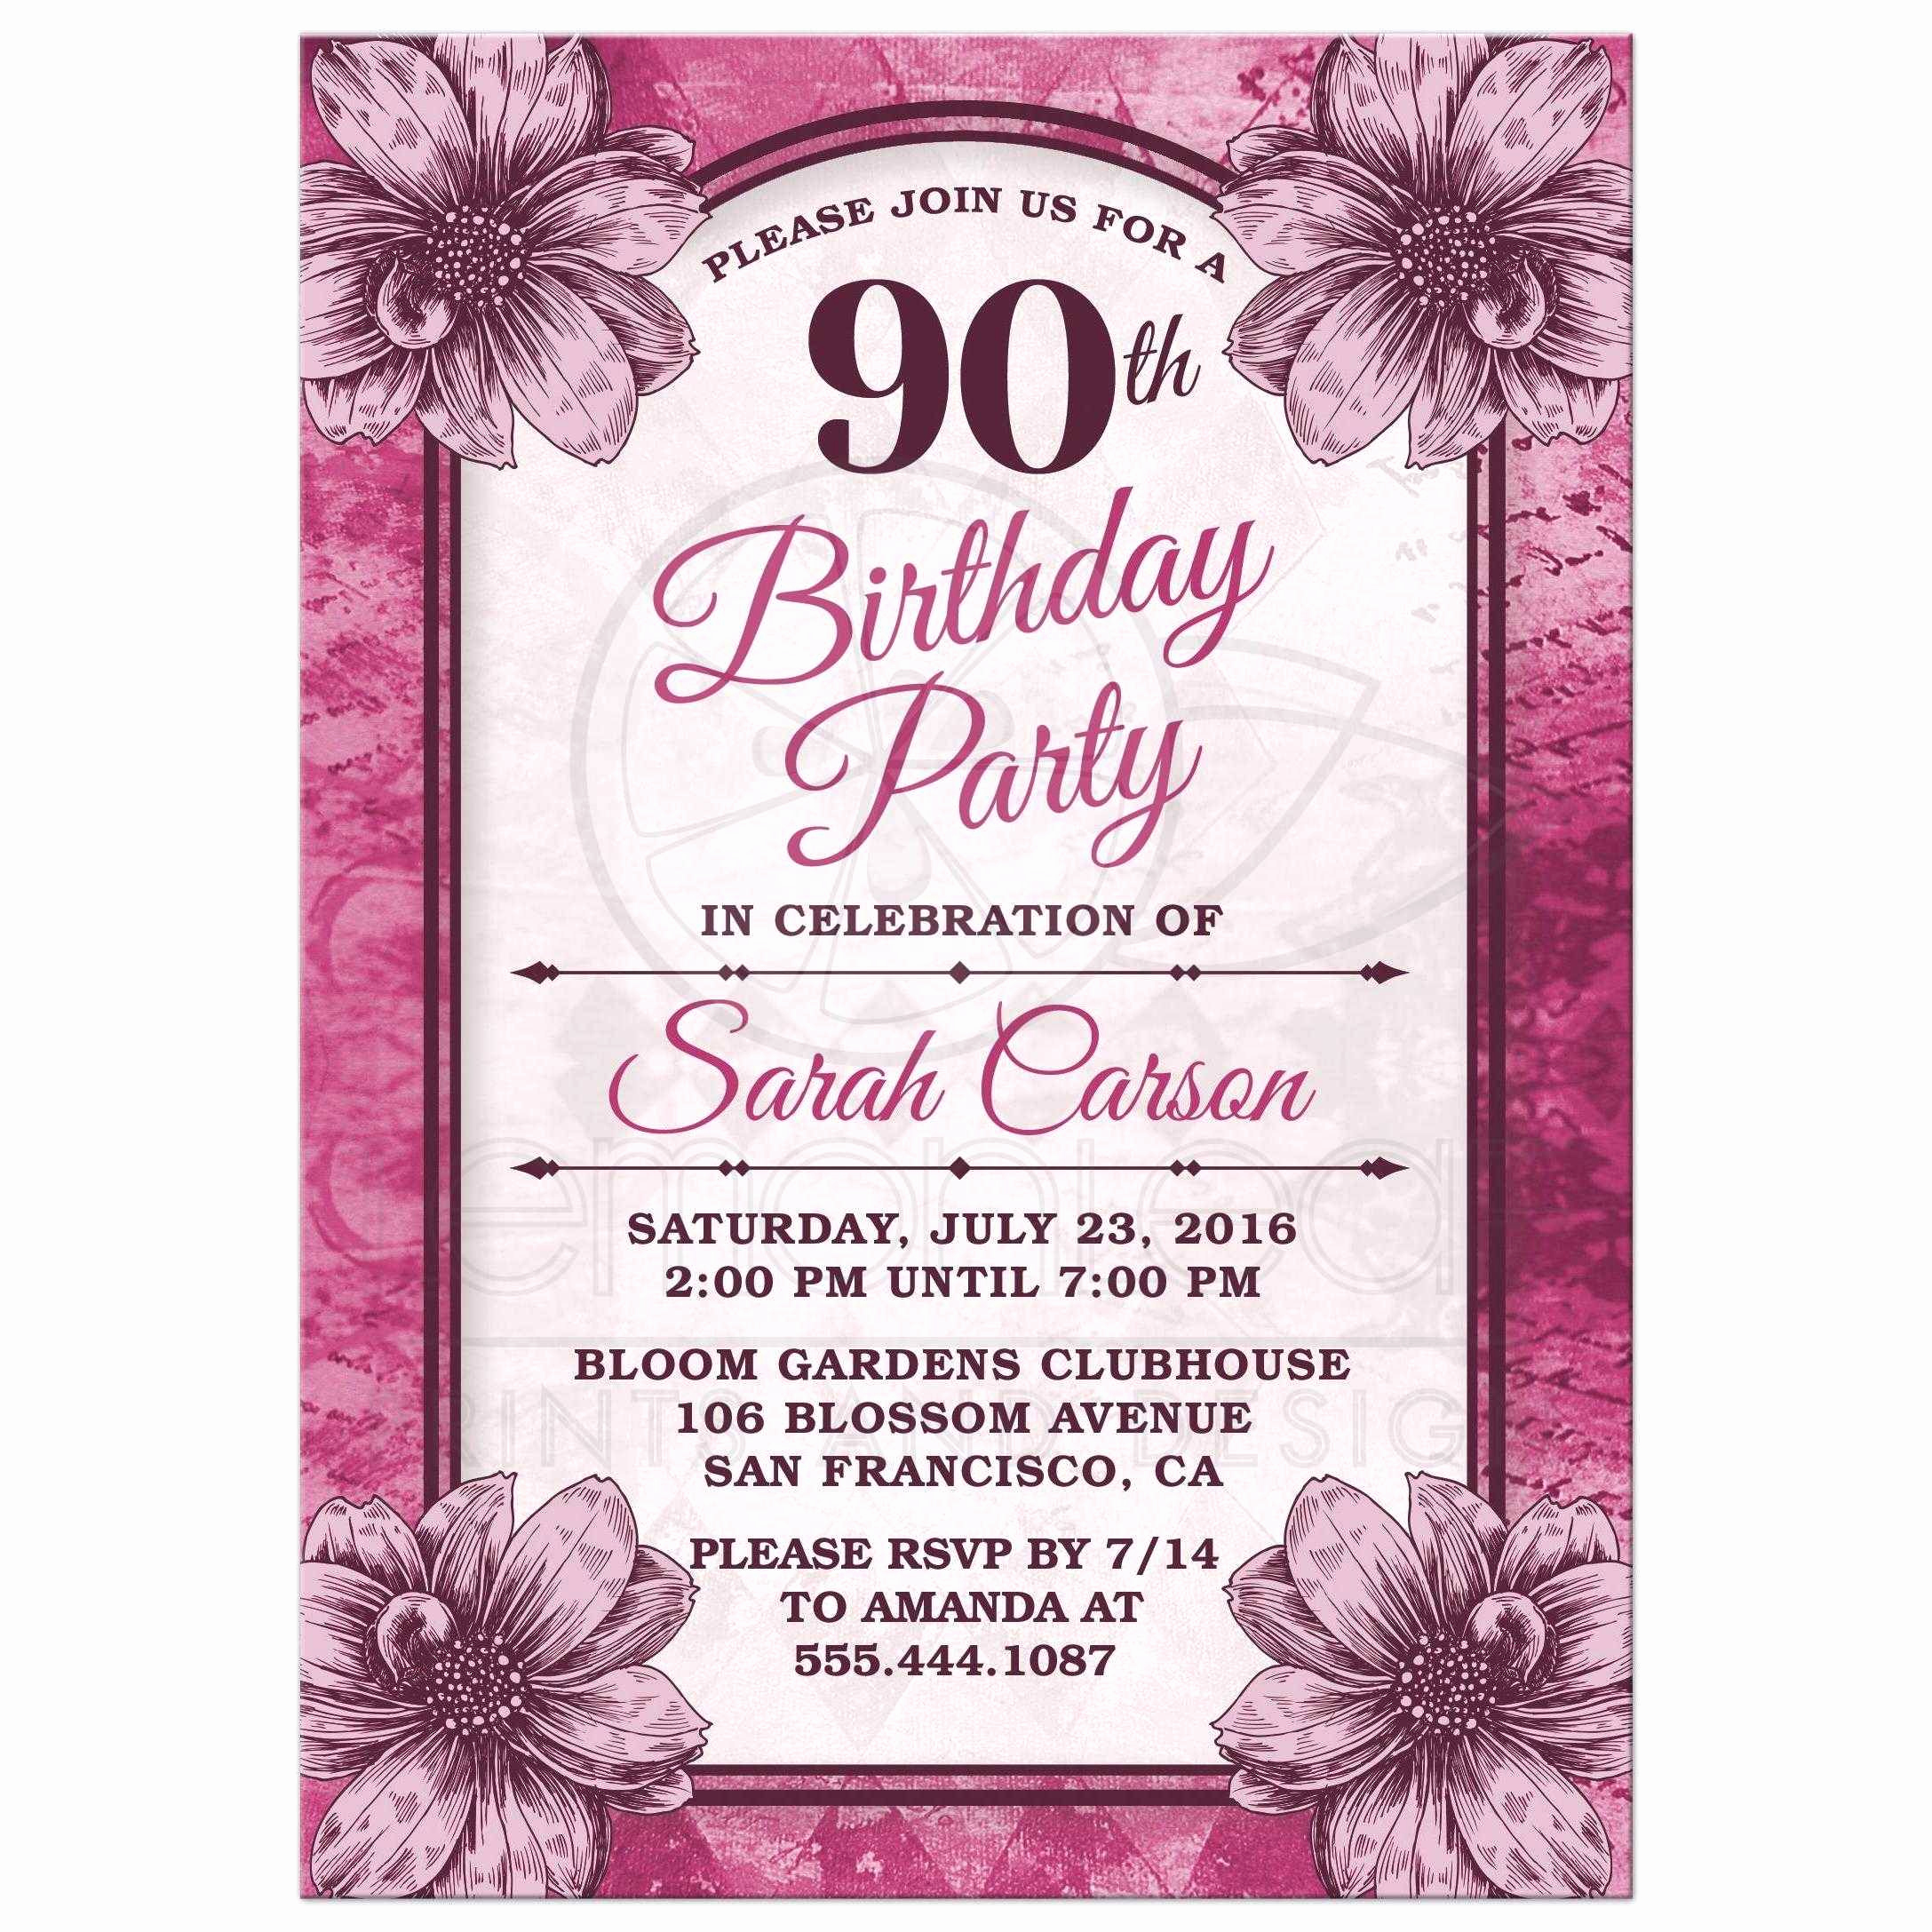 90th Birthday Invitation Templates Fresh 90th Birthday Party Invitations Templates Free